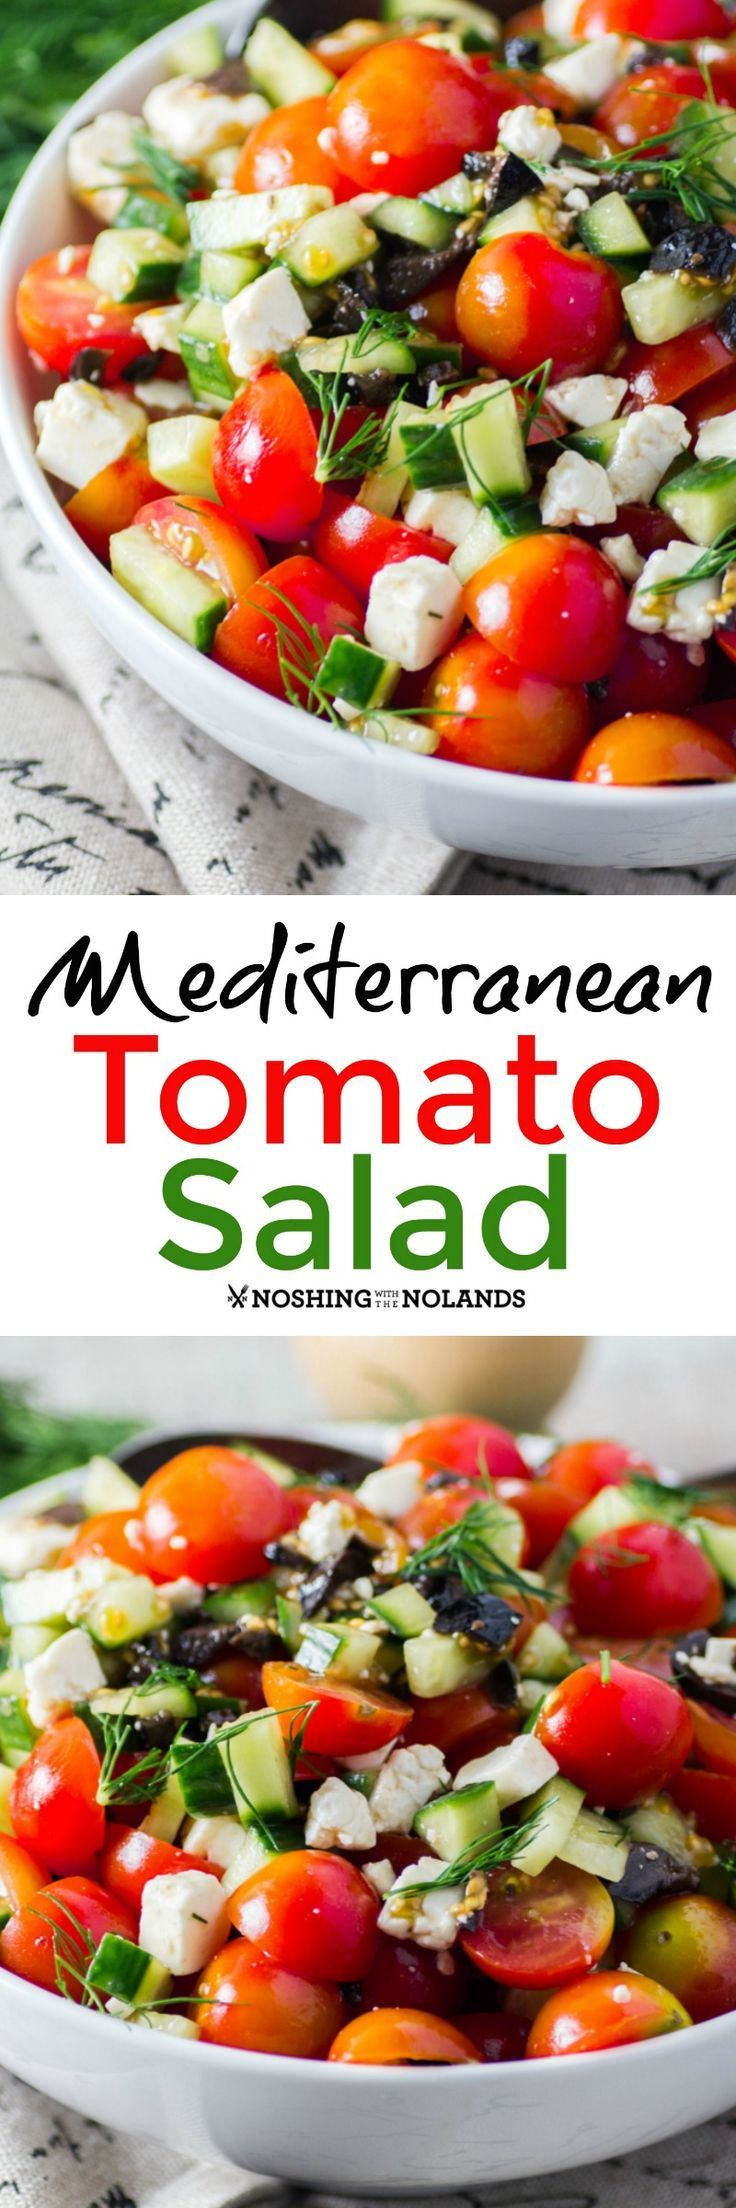 Mediterranean Tomato Salad by Noshing With The Nolands is bursting with fresh flavor you can serve as a side with any entree!